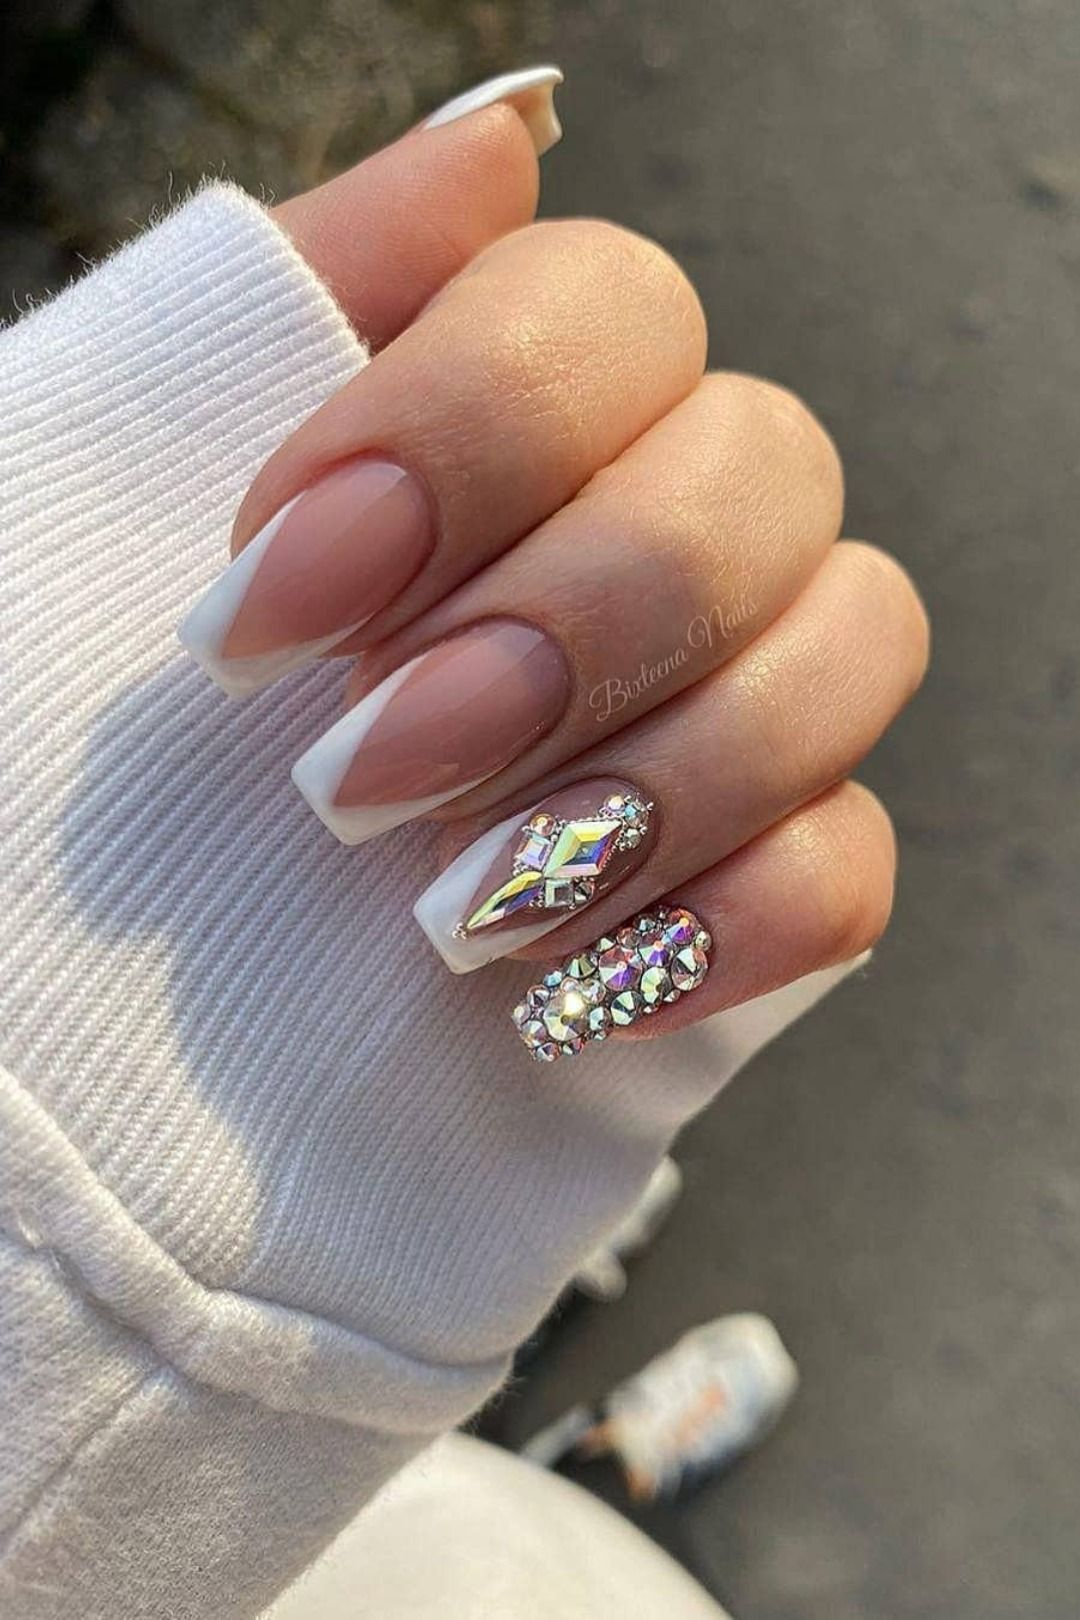 9 Stunning Modern French Manicure Ideas Stylish Belles In 2020 French Tip Nail Designs White Tip Acrylic Nails French Tip Acrylic Nails